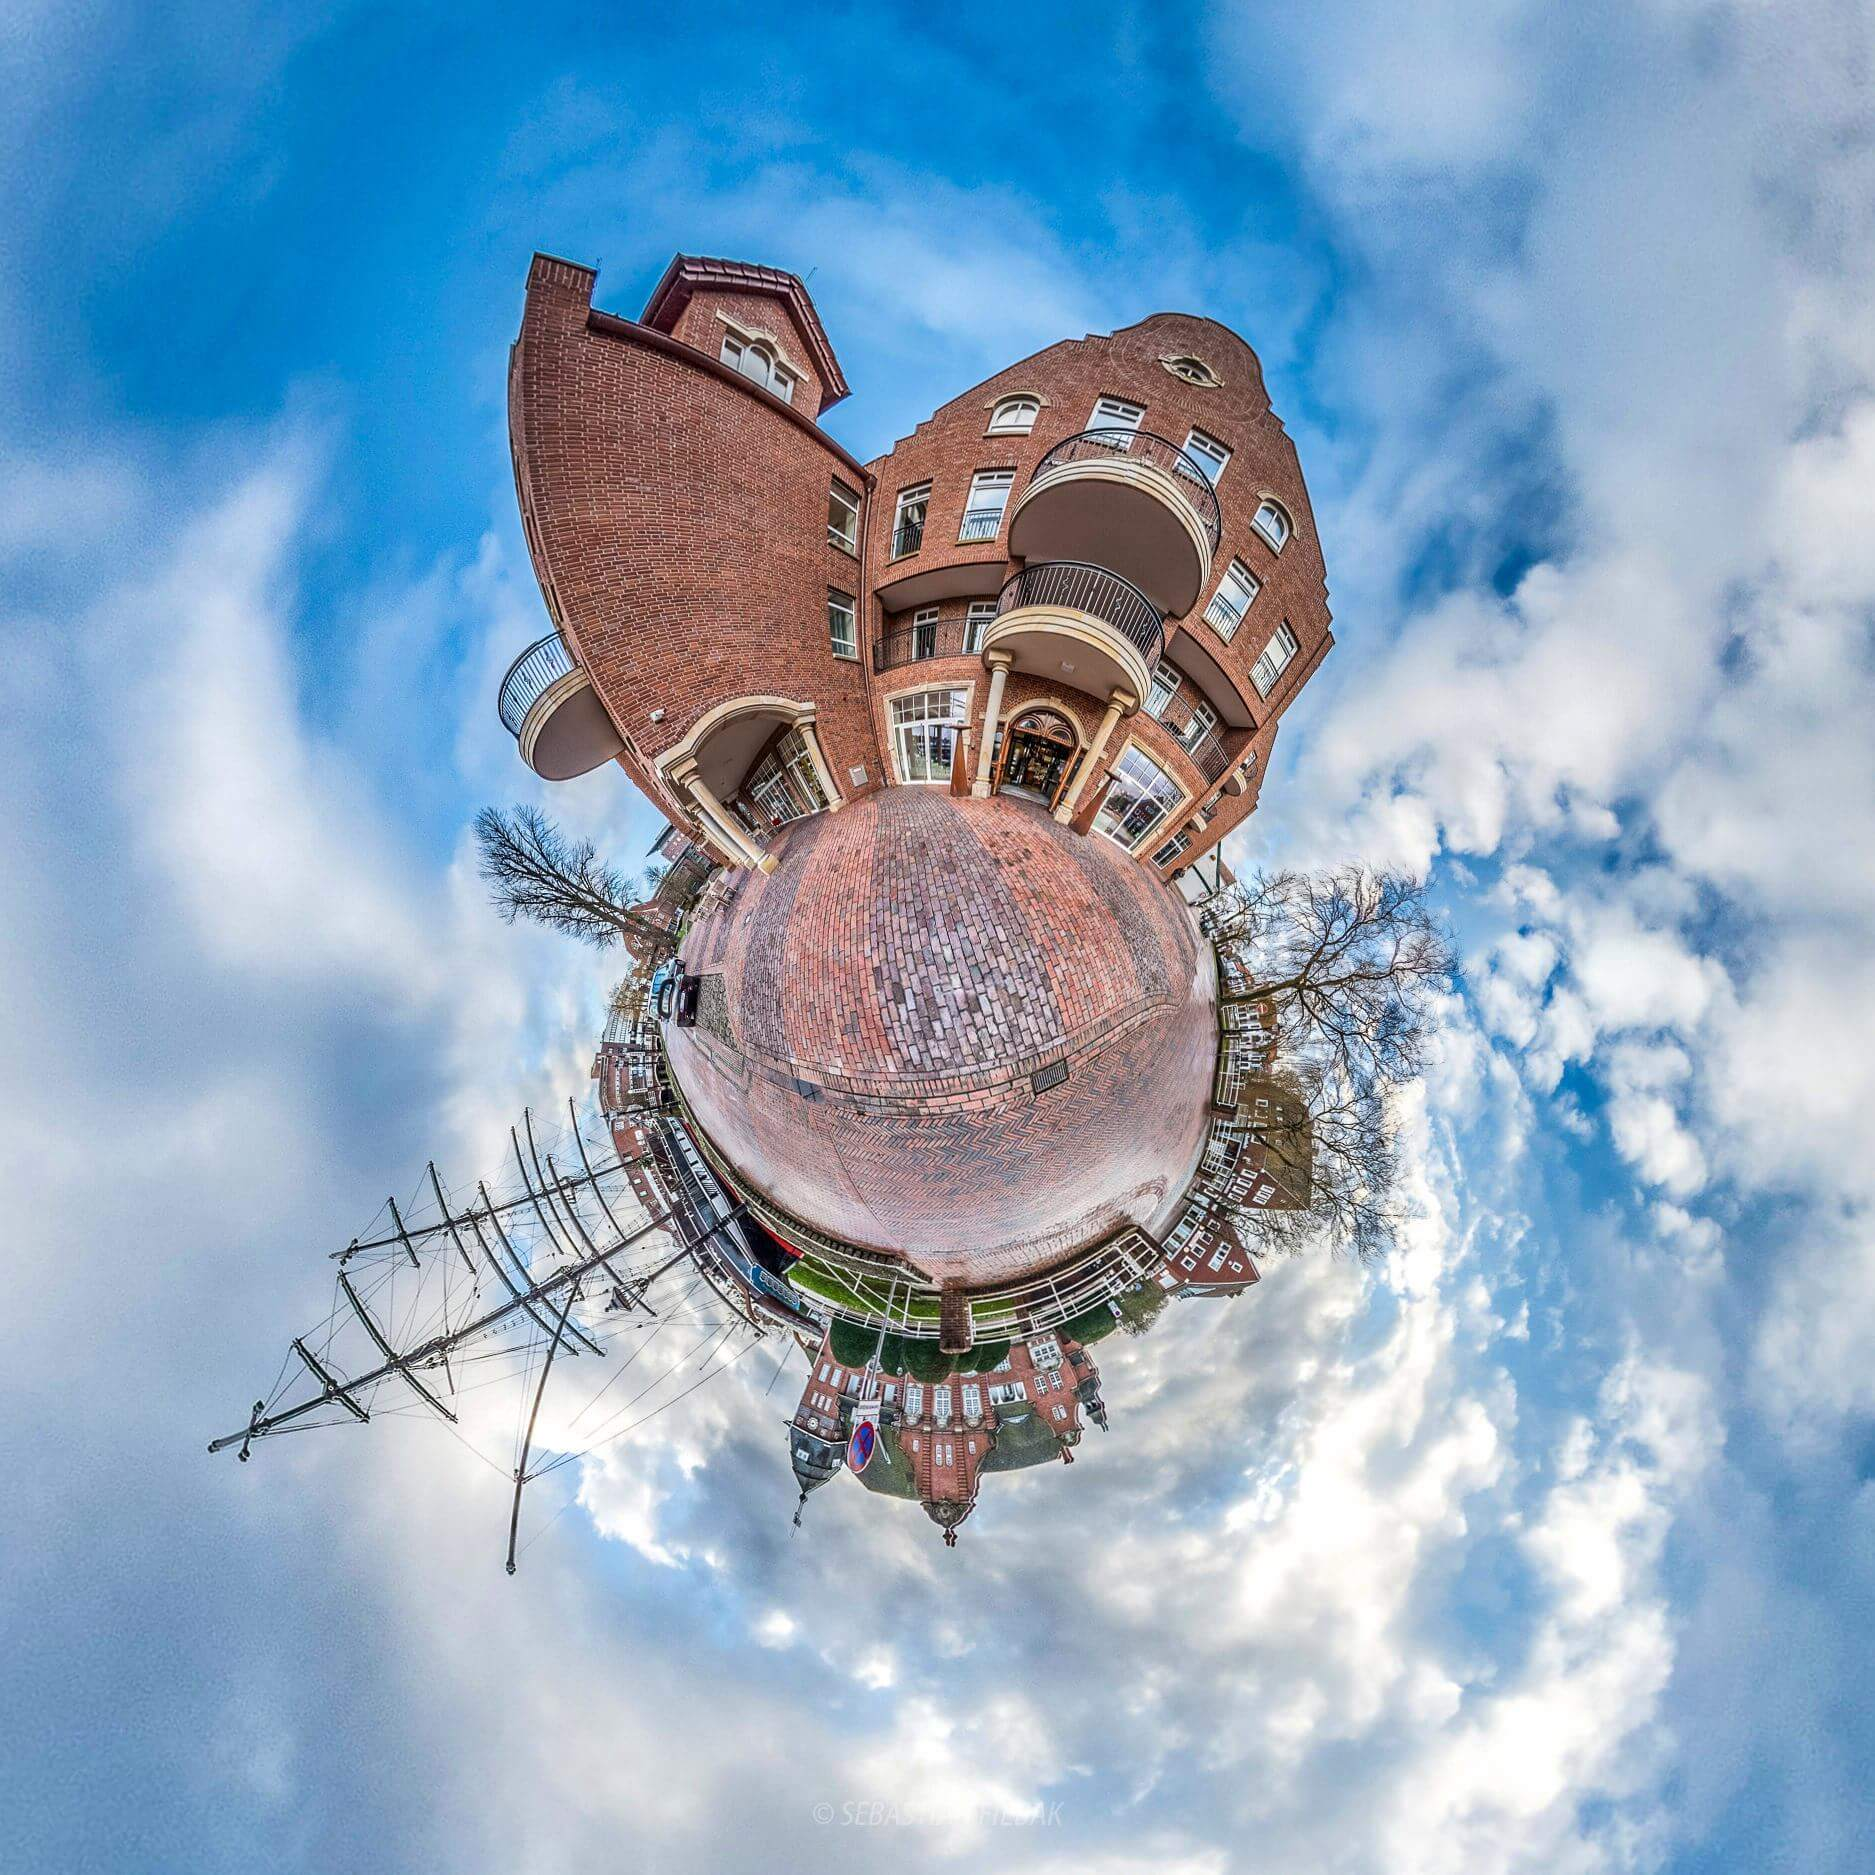 Arkadenhaus little planet